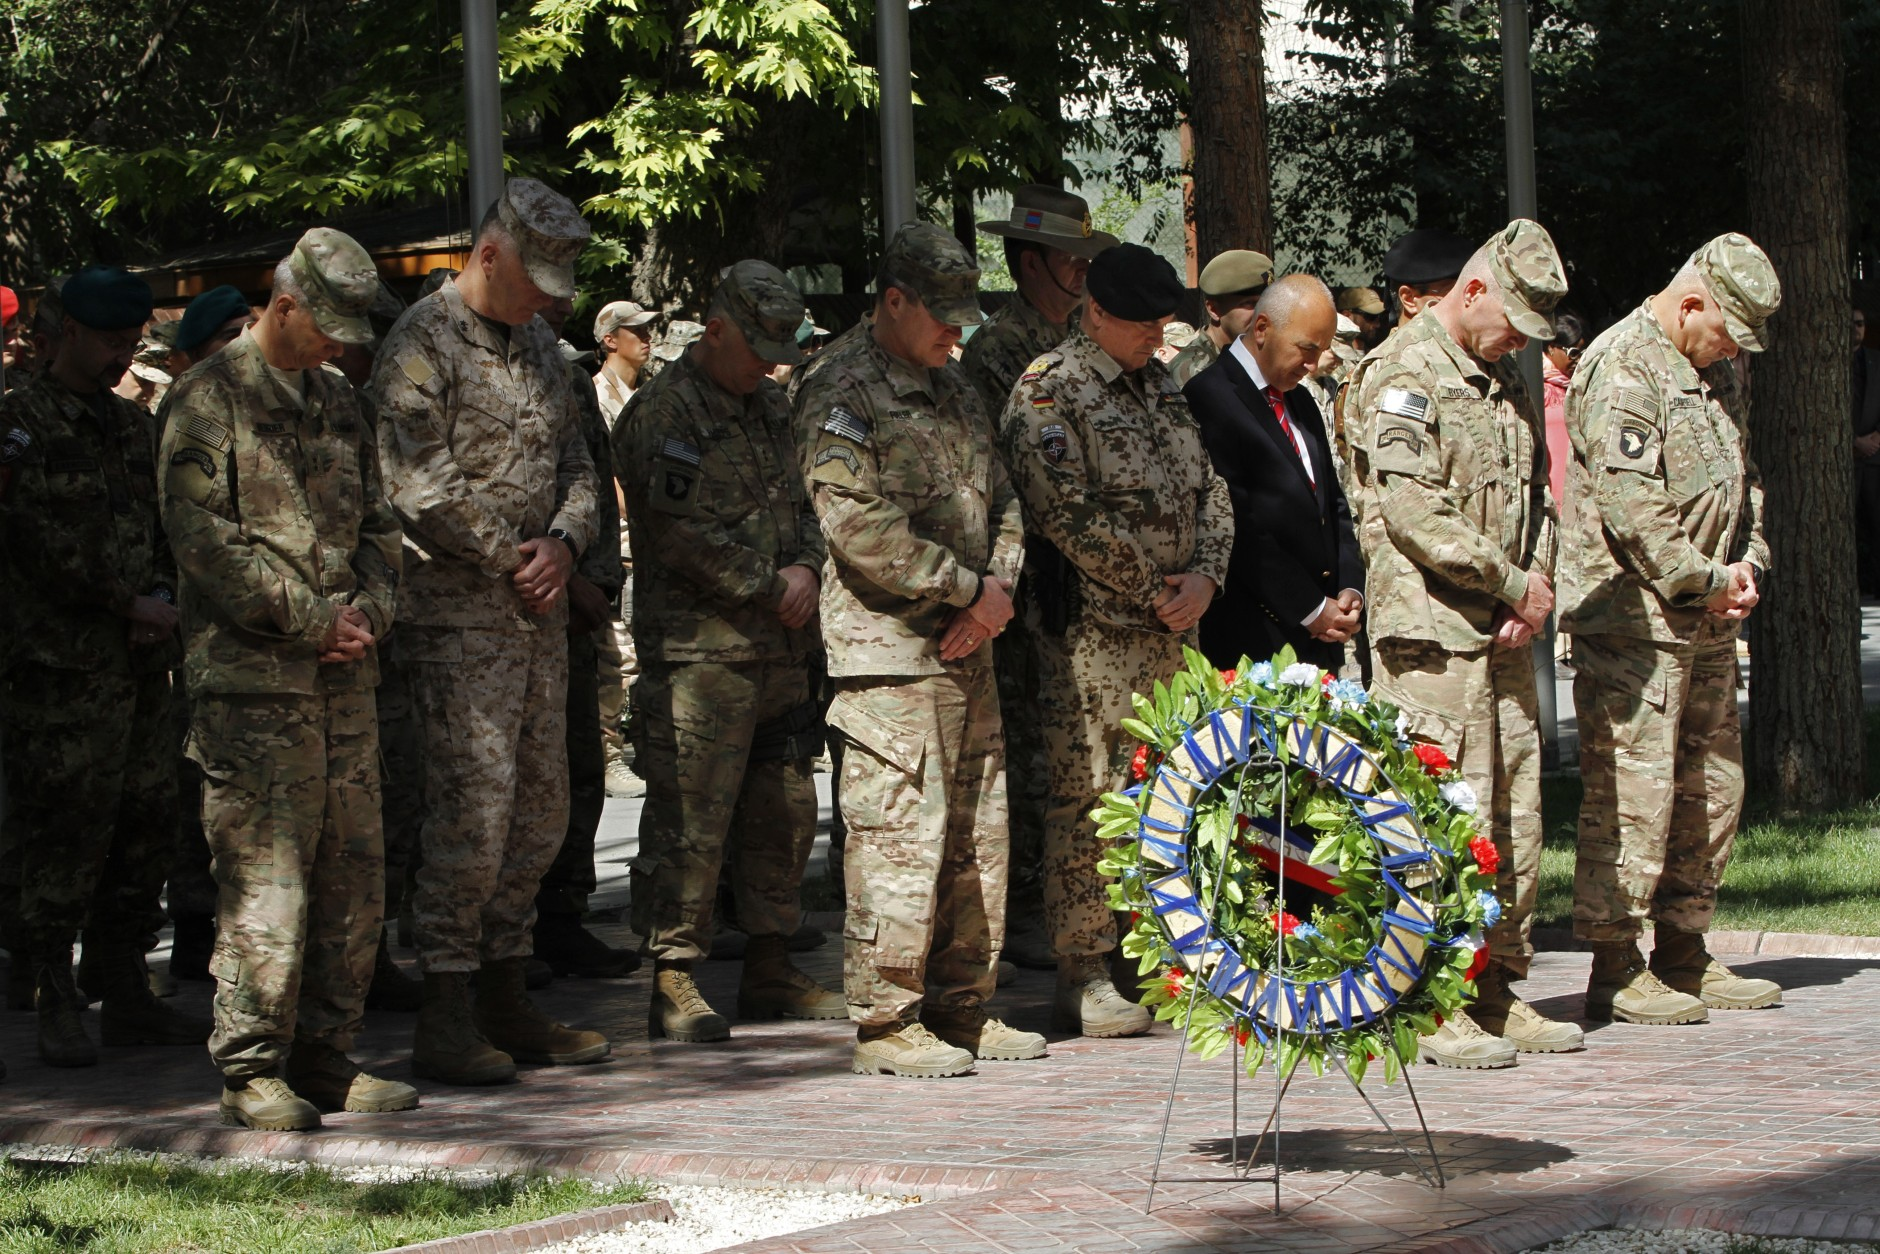 General John F. Campbell, commander of international forces in Afghanistan, second right, gives respect during a ceremony marking Memorial Day at the Resolute Support main headquarters in Kabul, Afghanistan, Monday, May 25, 2015. Over 2,300 American soldiers and more than 11,00 coalition soldiers have lost their lives in action during the last 14 years in Afghanistan. (AP Photo/Allauddin Khan)